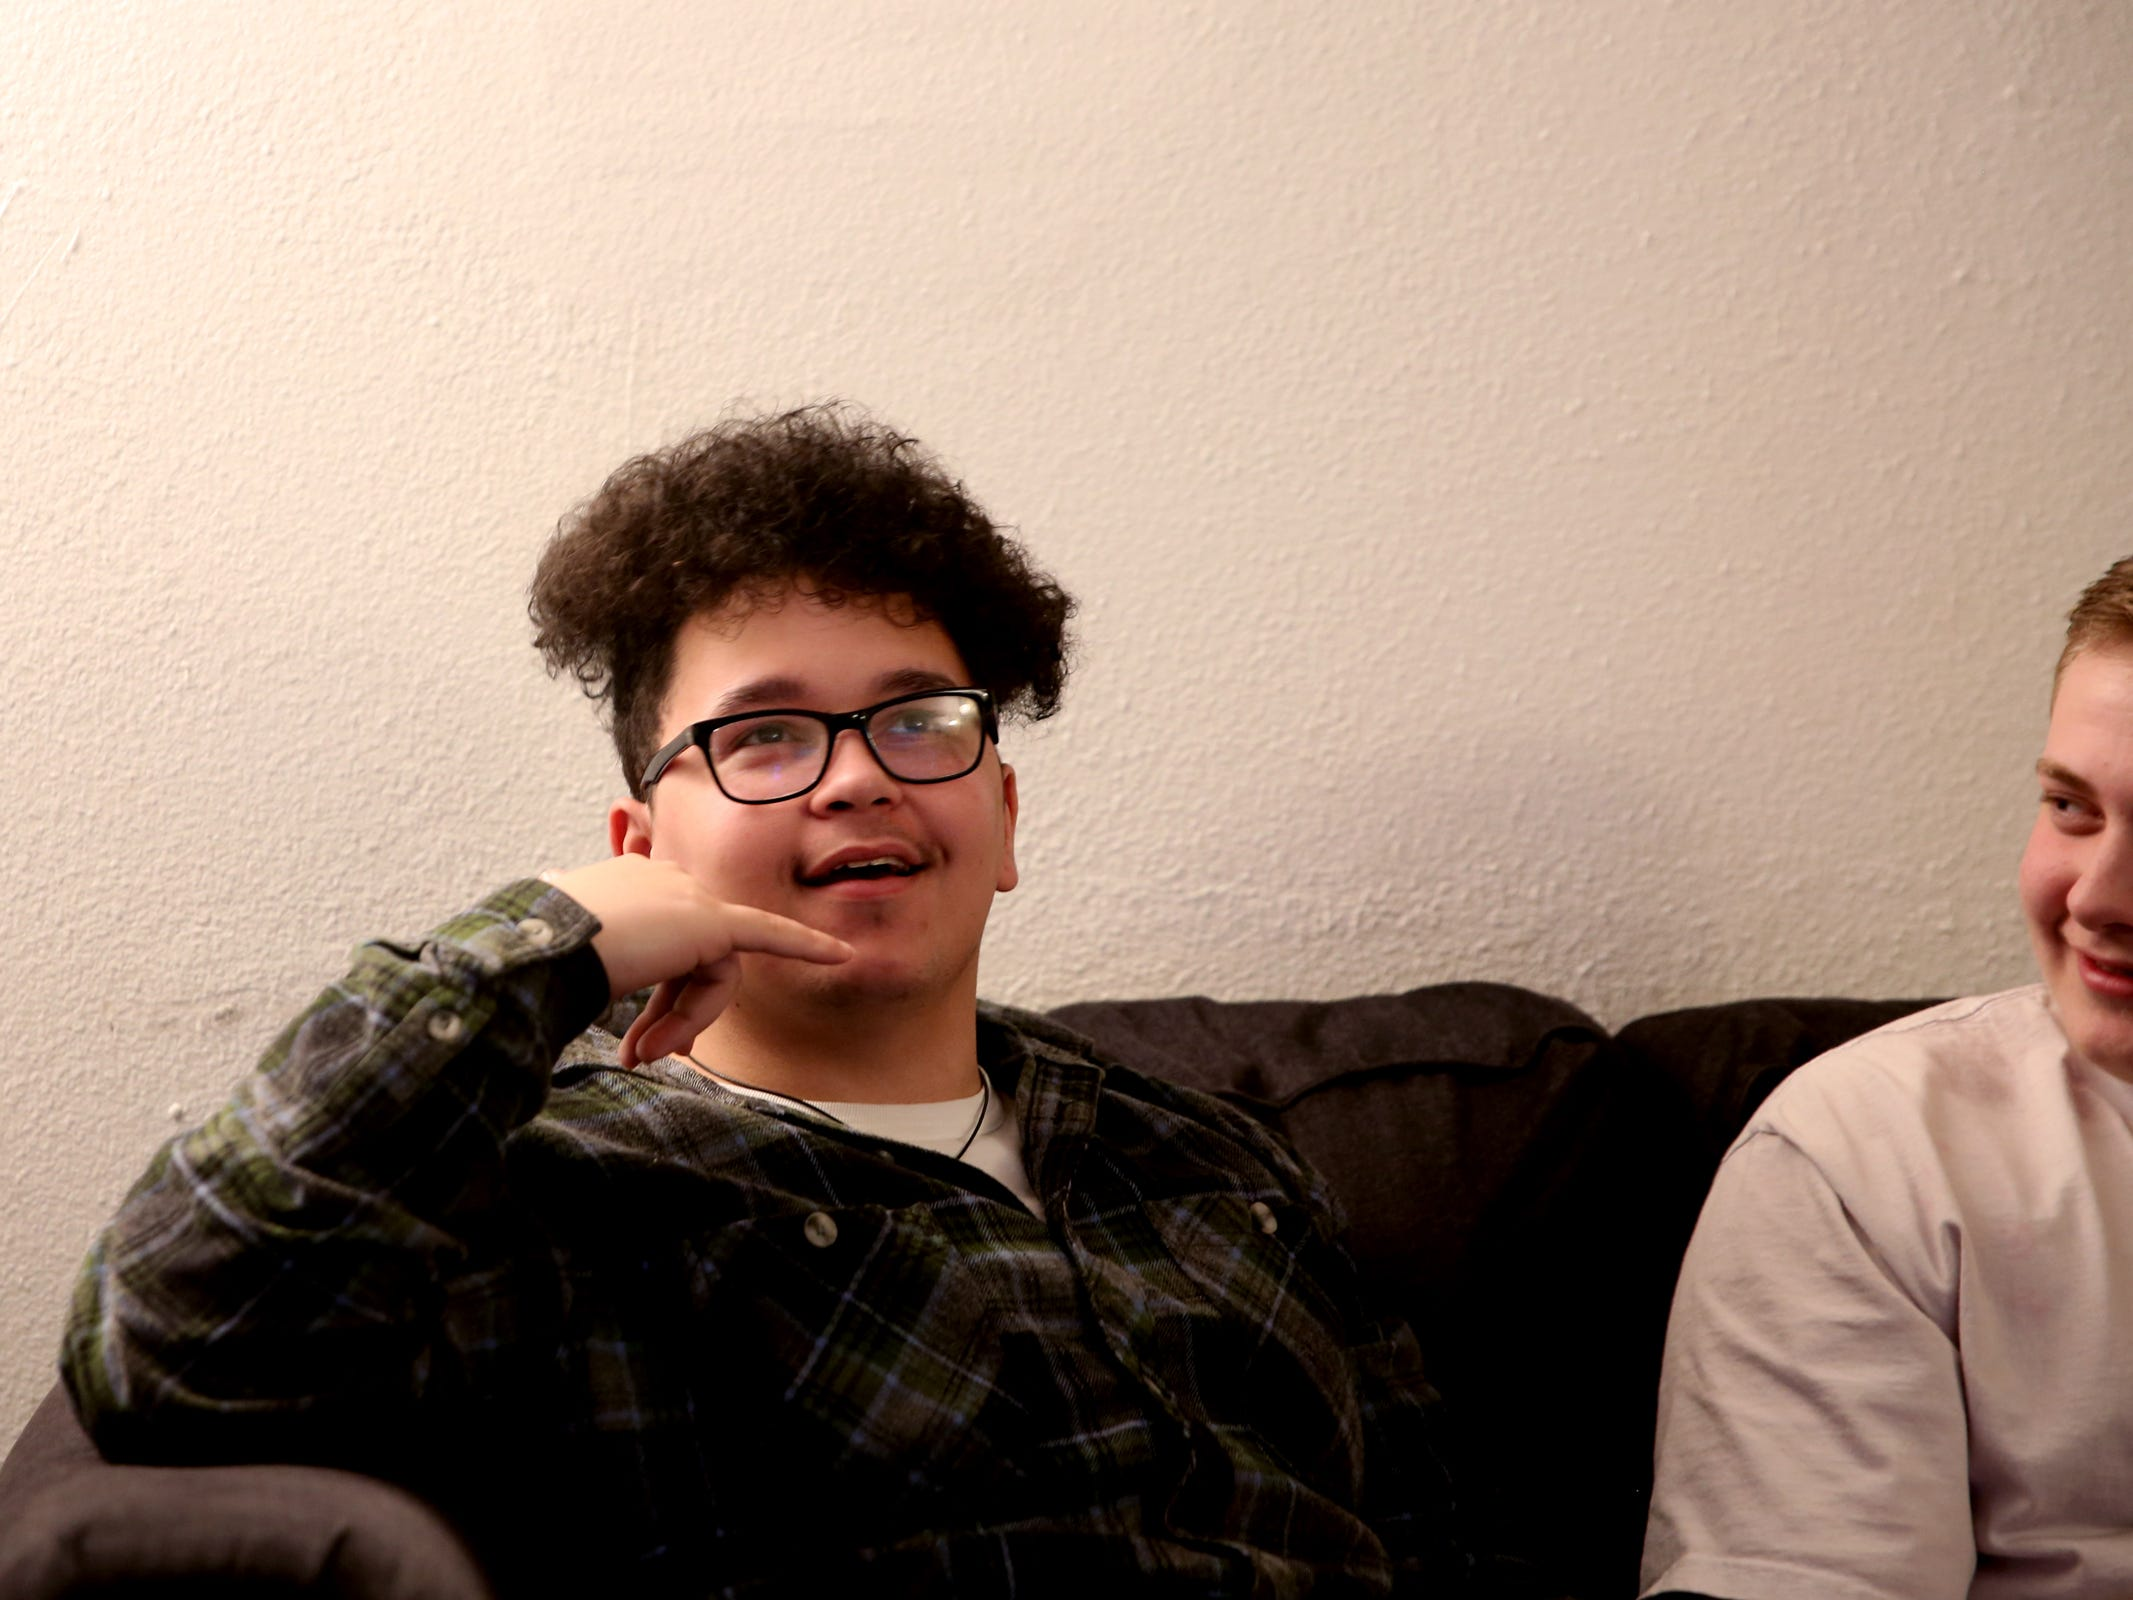 Caleb McDonald, 18, left, mimes his reaction after finding out he placed third in a national songwriting competition as Andrew McMains, 17, watches at IKE Box in Salem on Thursday, Jan. 31, 2019. Songs they and one other Salem teen wrote placed in the Teens Make Music national competition, organized by MusiCares, and will travel to this year's GRAMMY Awards in Los Angeles.